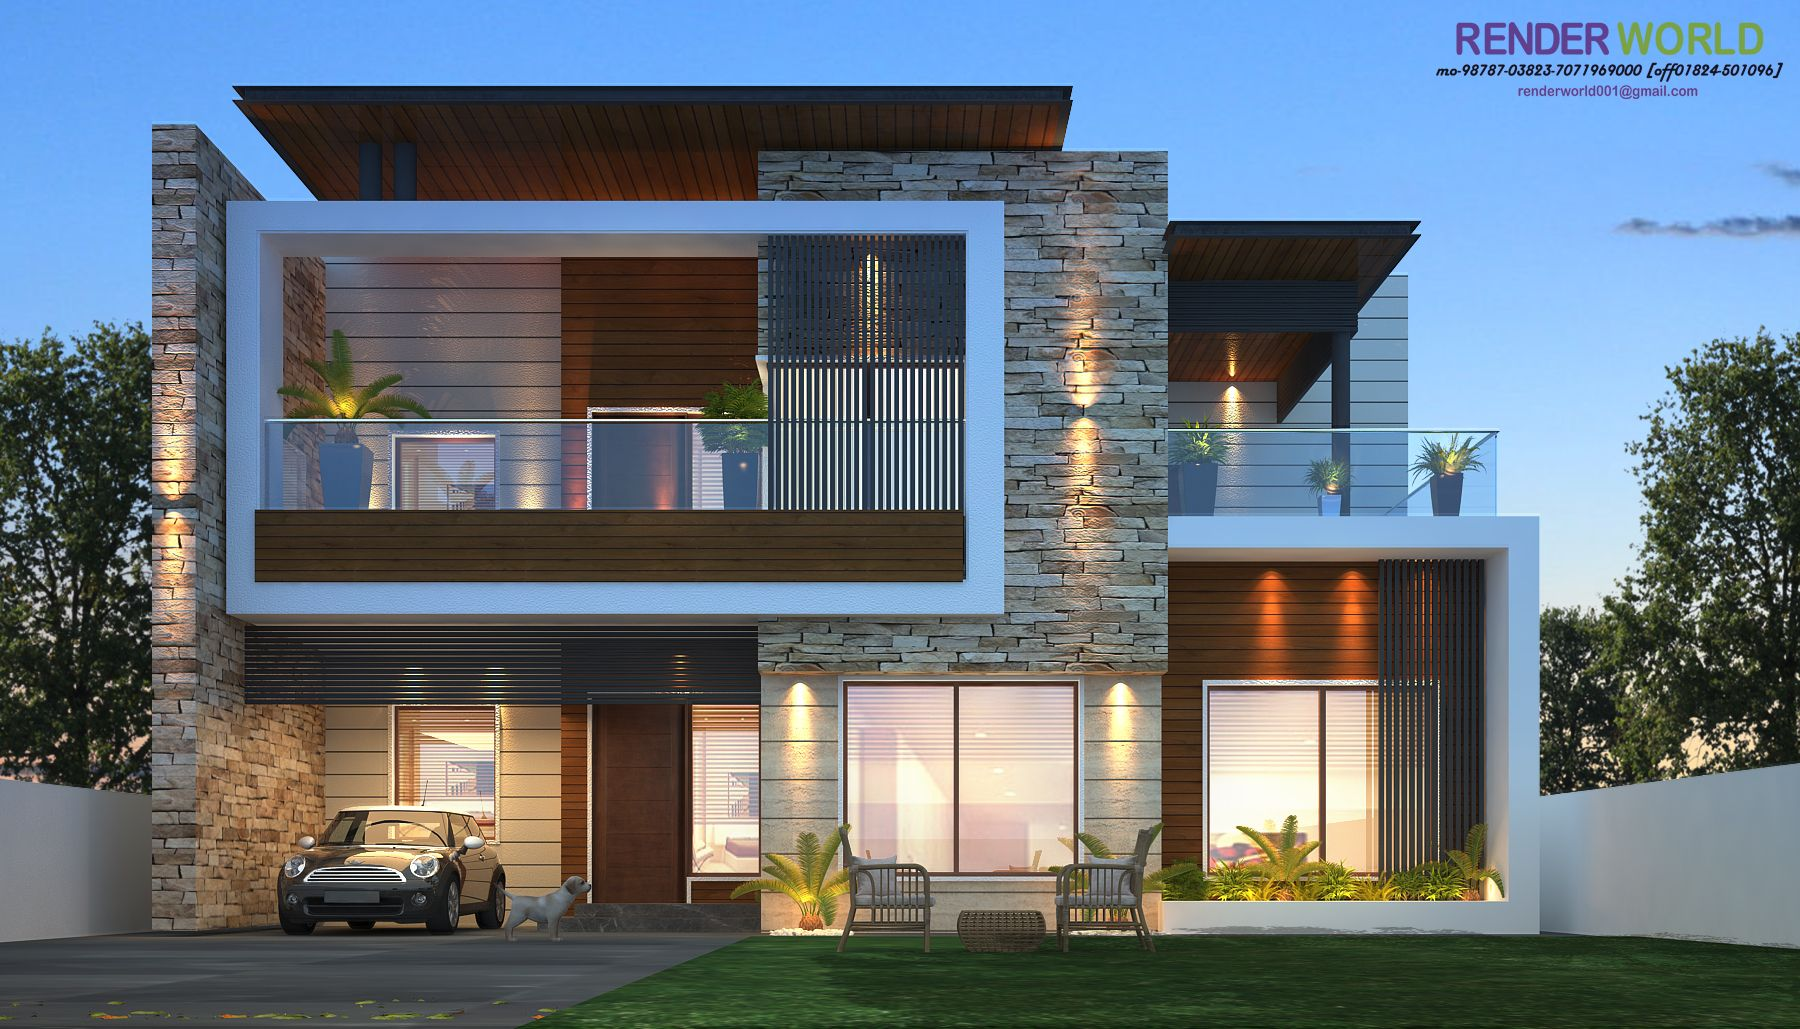 01f258f89e845baa9b3c89011ad53daf - 13+ Modern Front Design Of House In Small Budget Gif